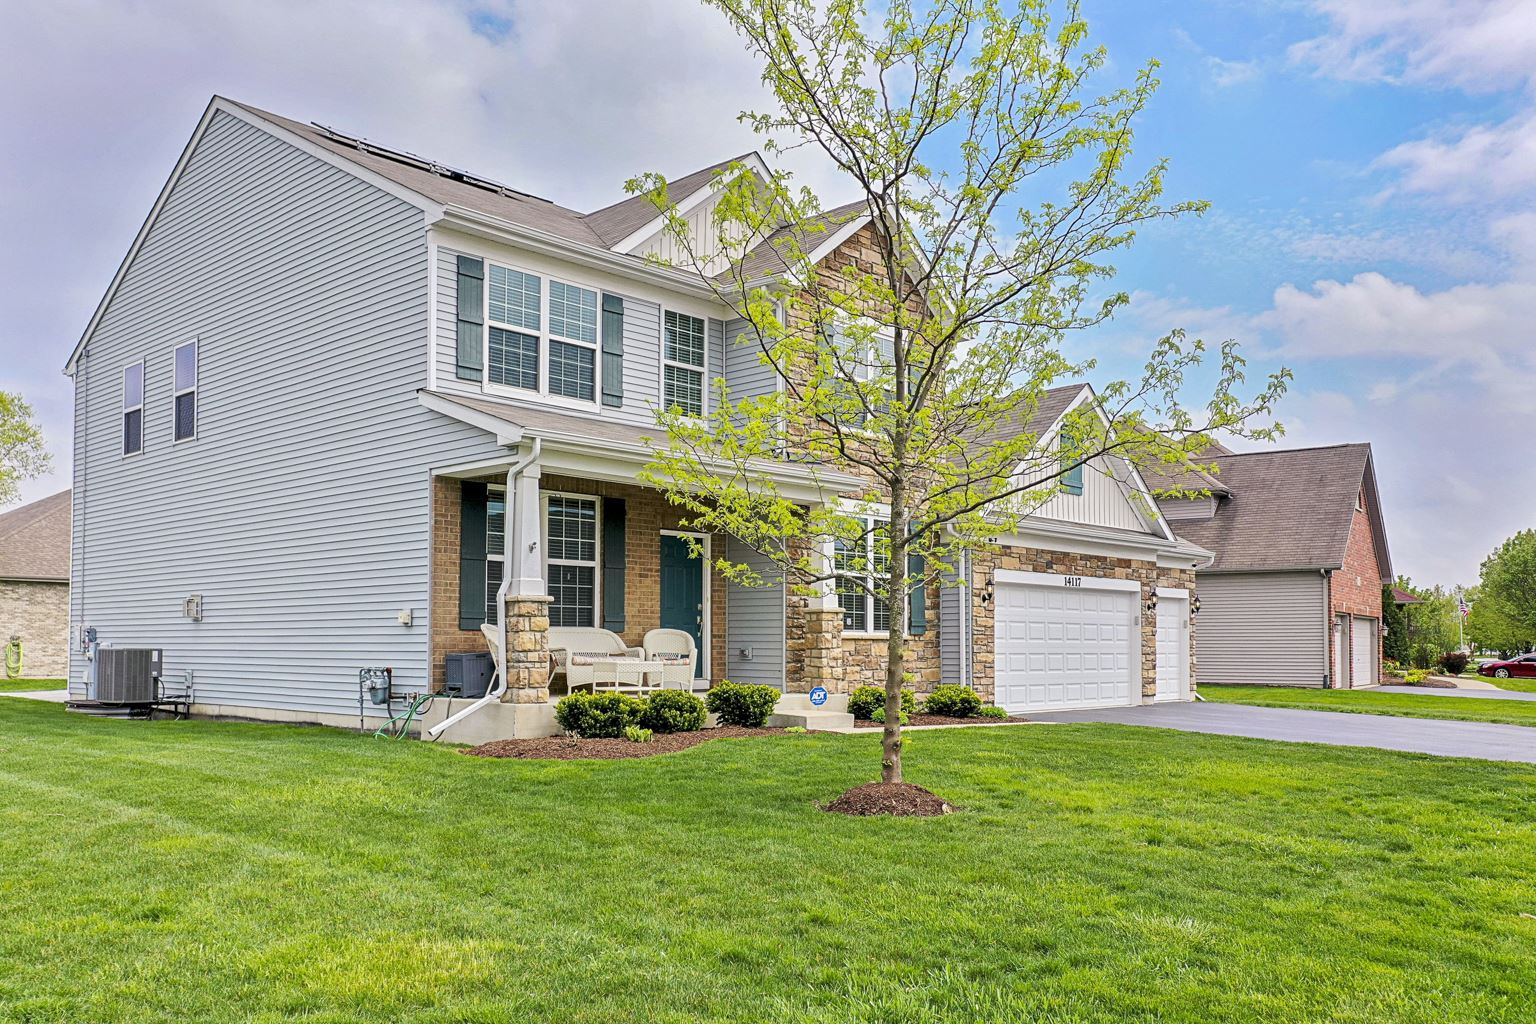 Photo of 14117 Meadow Lane, Plainfield, IL 60544 (MLS # 11077974)